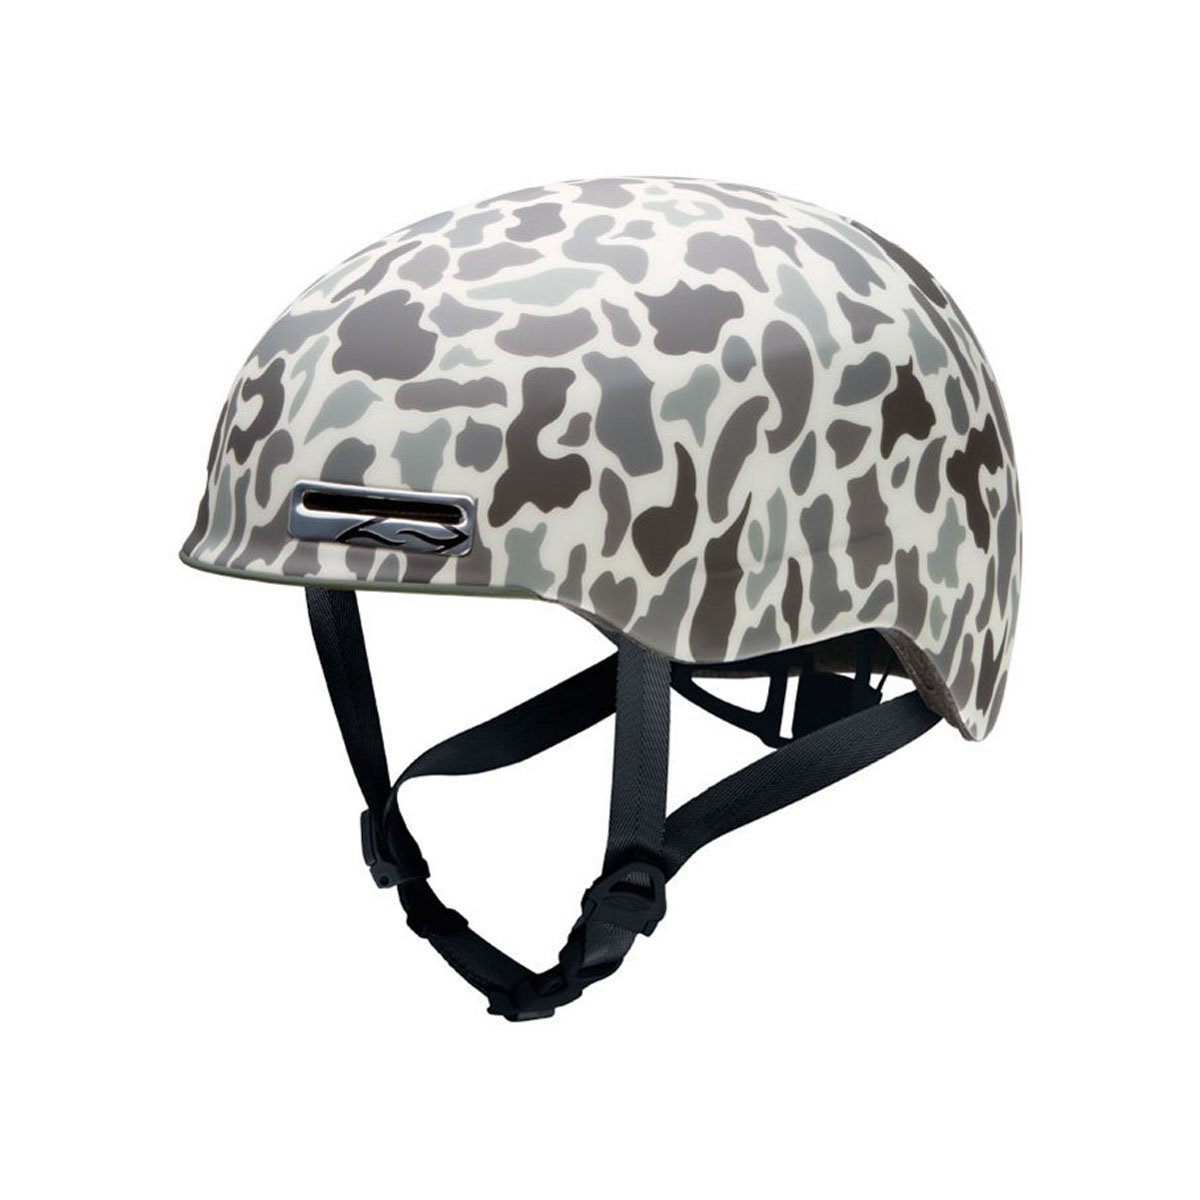 Best Selling Smith Optics Bicycle Helmets